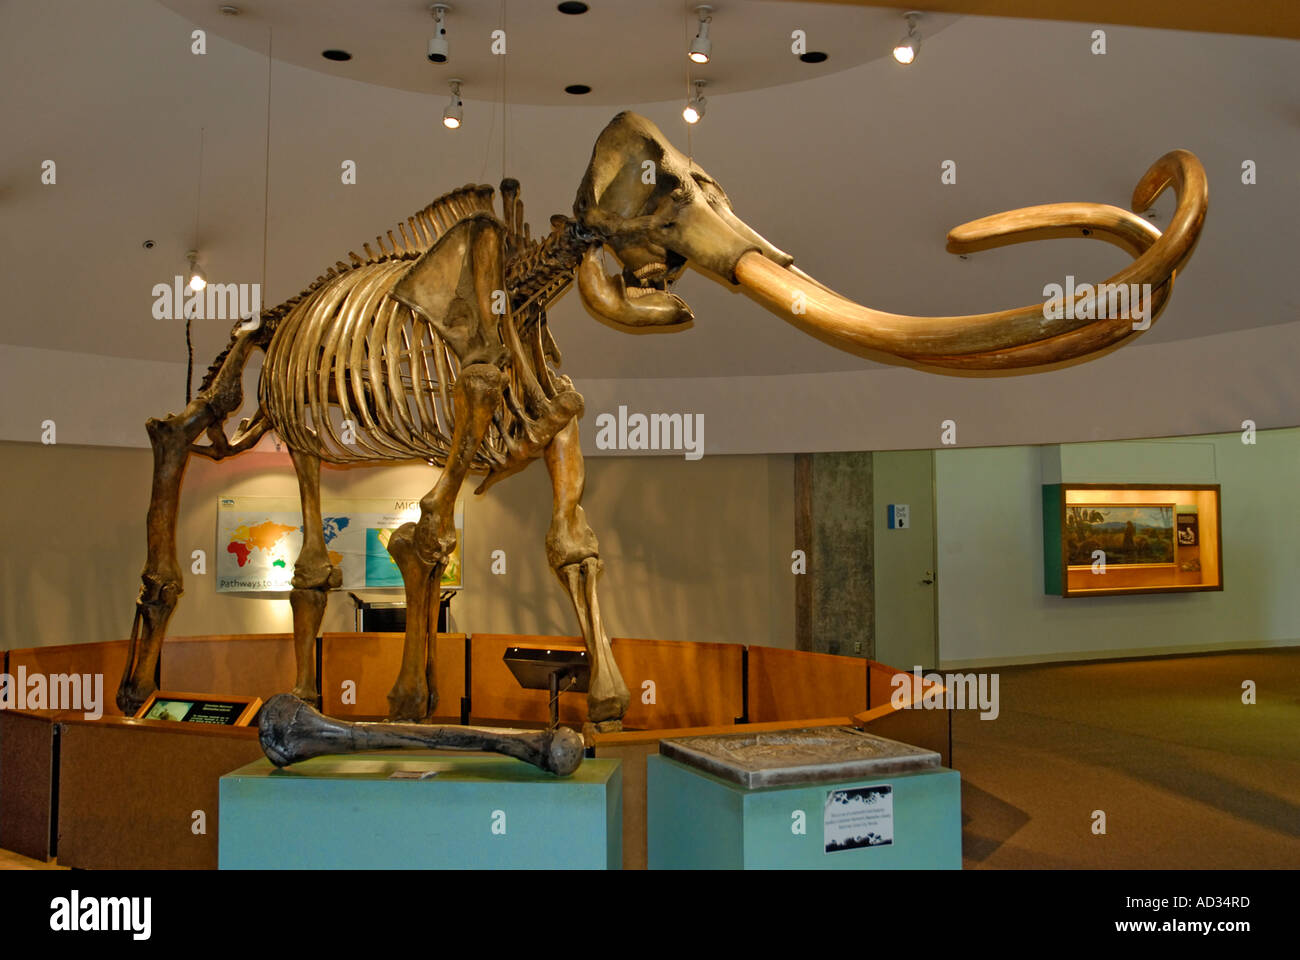 Columbian Mammoth, Mammuthus columbi, skeleton with tusks from La Brea Tar Pits, Page Museum, Los Angeles - Stock Image